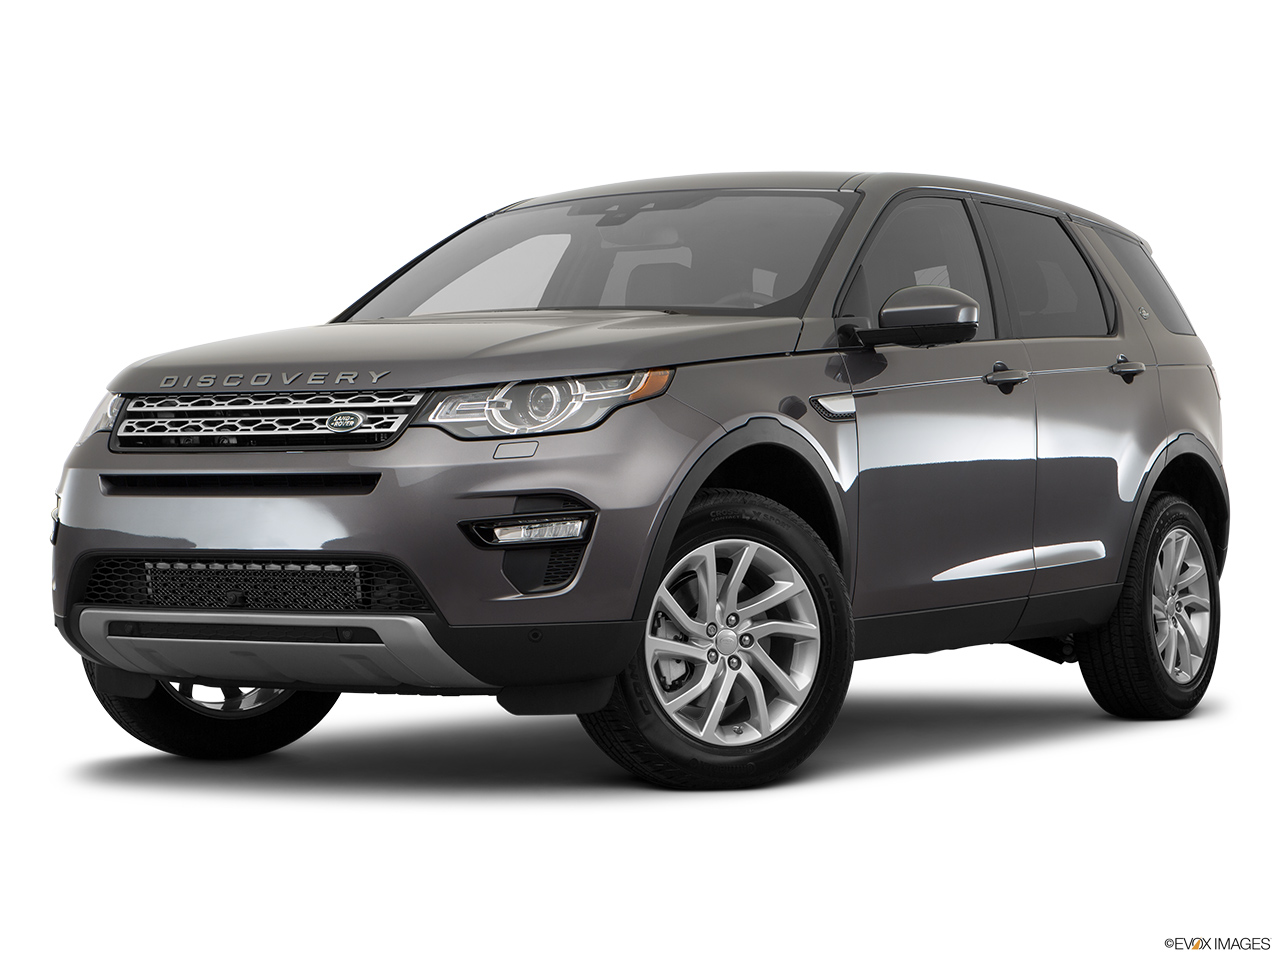 Ford Explorer 2017 Lease >> Lease a 2018 Land Rover Discovery Sport Automatic AWD in ...